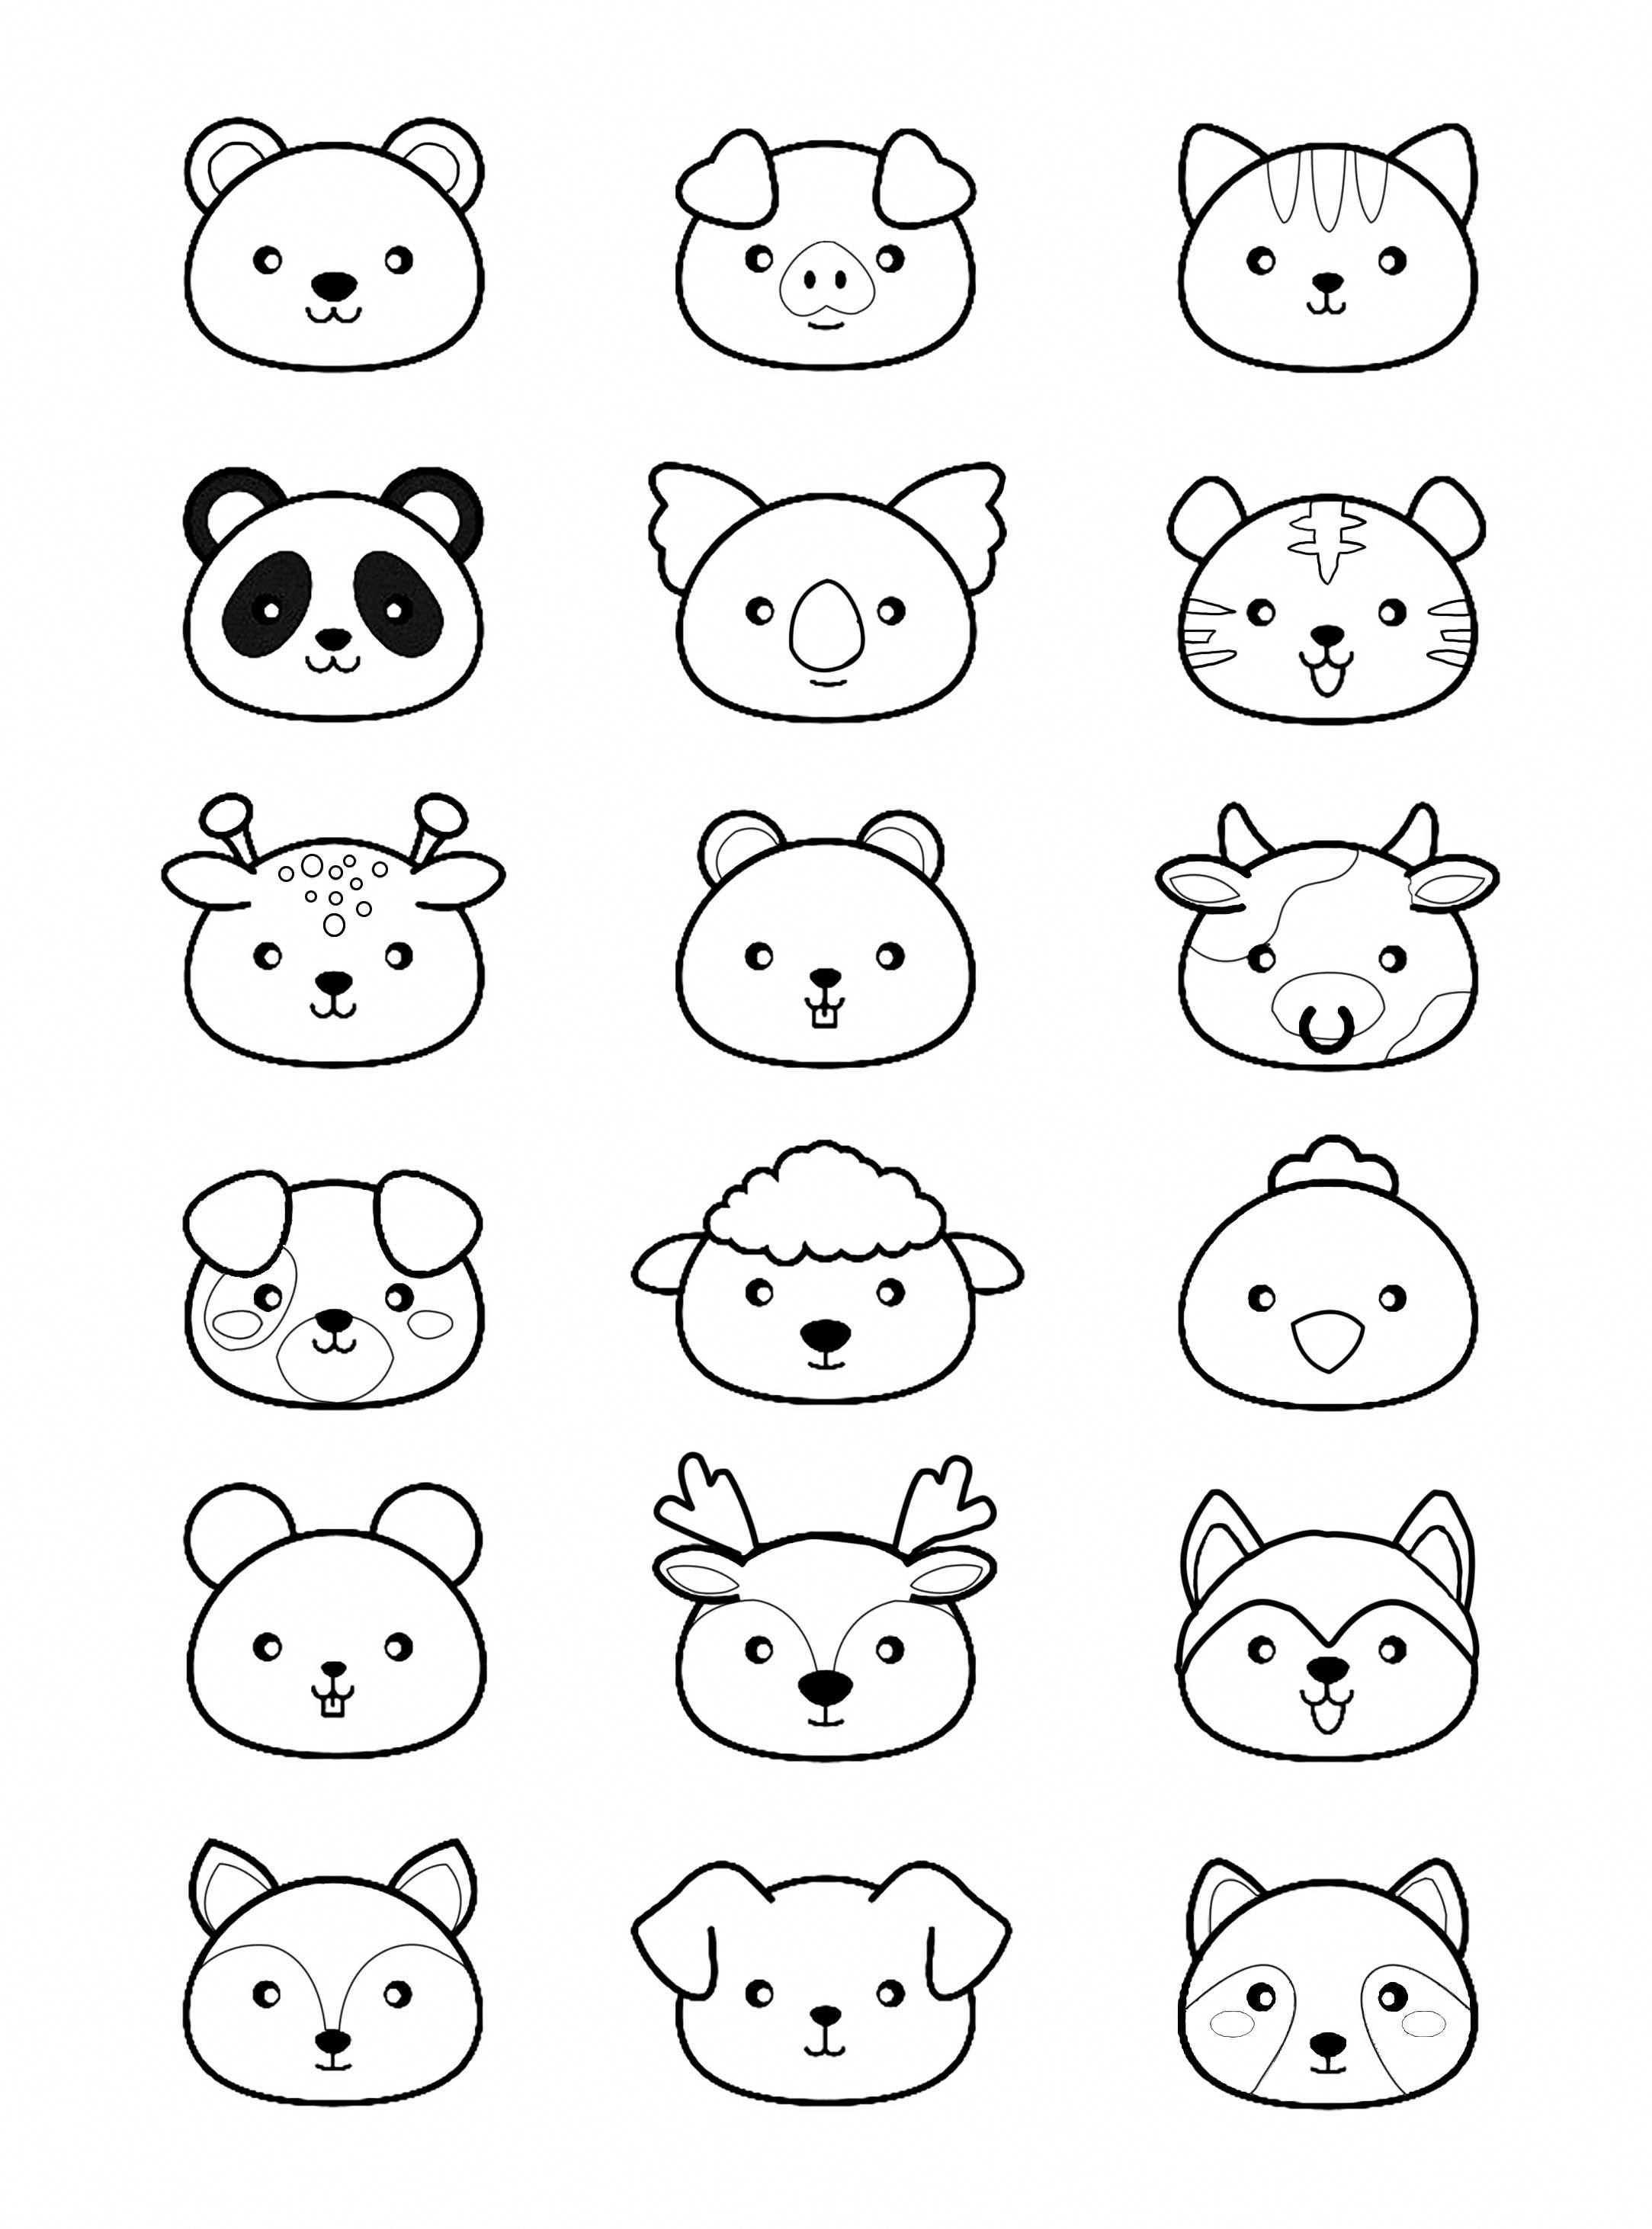 Discover Our Coloring Pages Of Panda To Print And Color For Free Did You Know Giant Pandas Gr Panda Coloring Pages Cute Coloring Pages Cute Kawaii Drawings